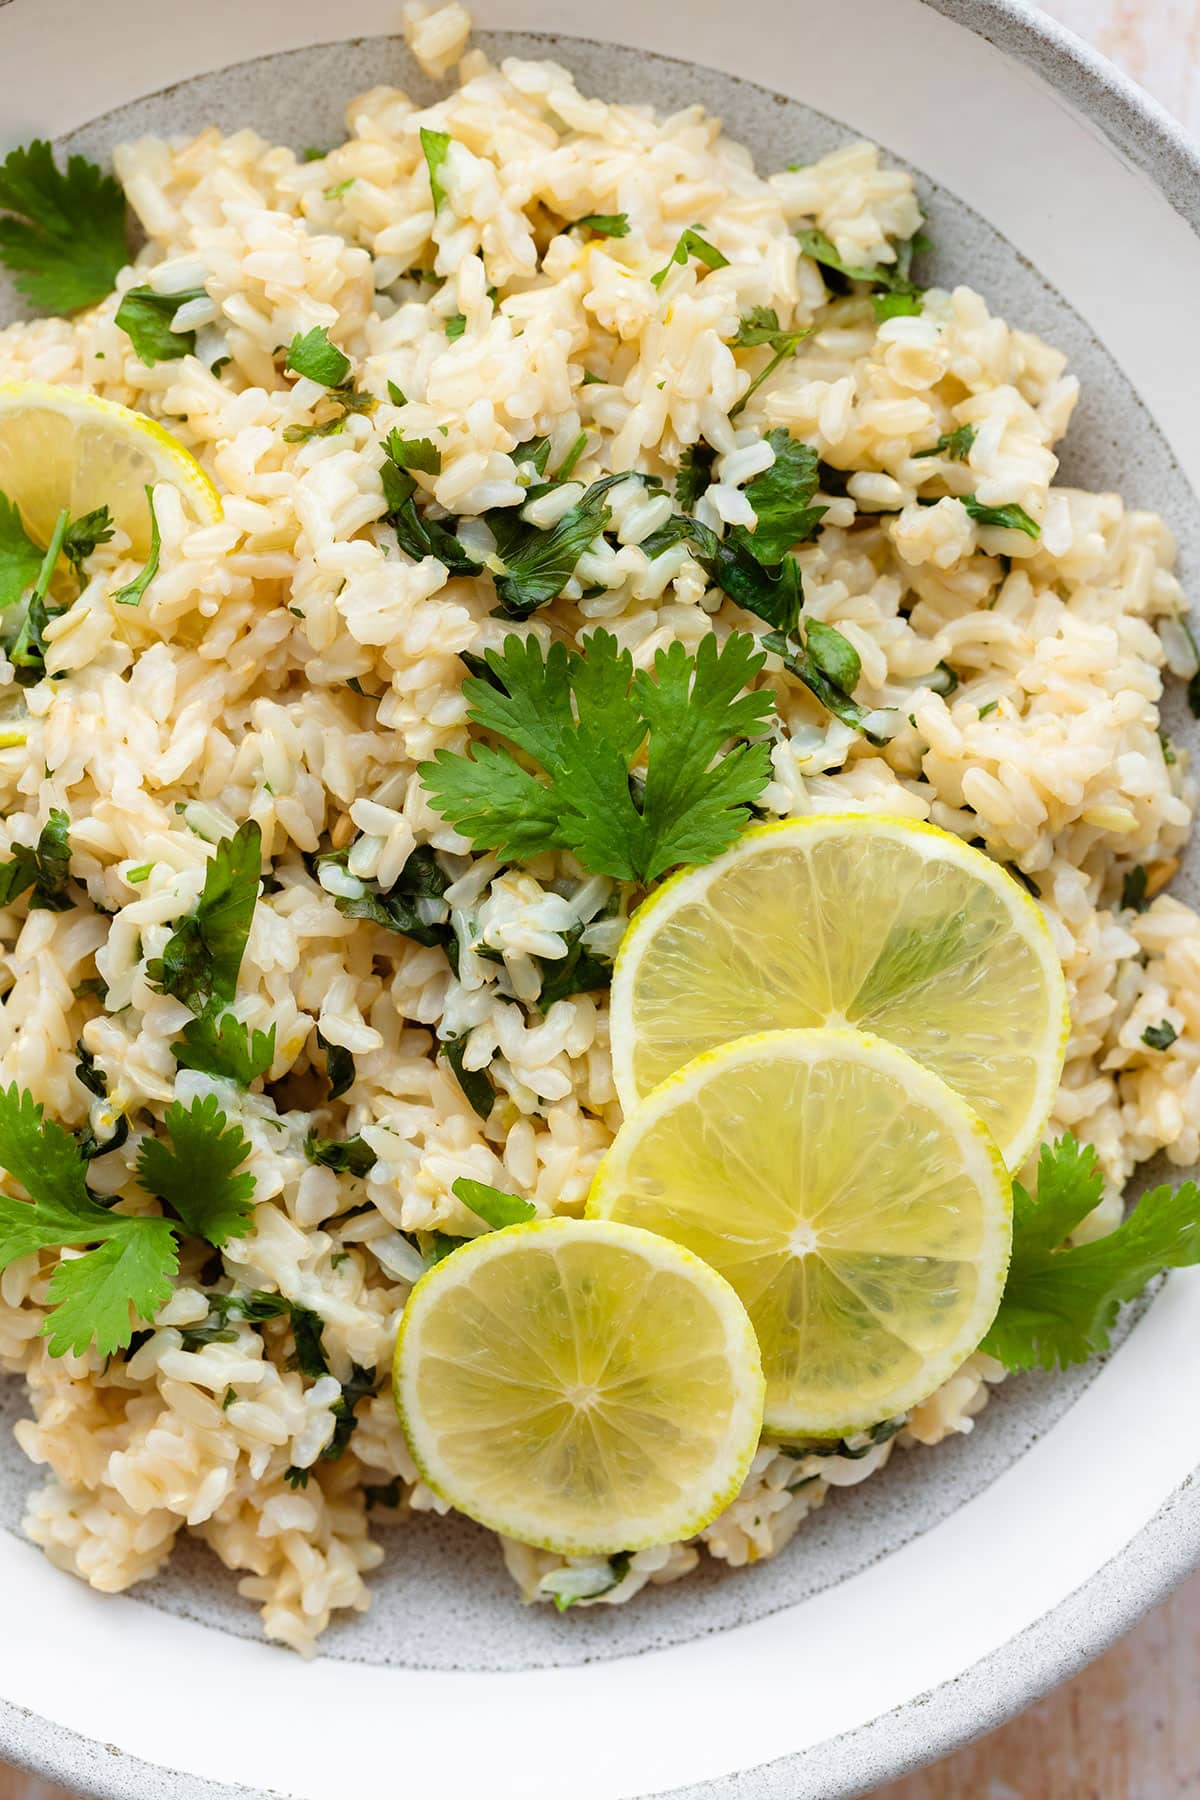 A close up of brown rice with cilantro and lime, decorated with lime slices. In a grey bowl with a white rim on a light wooden background.